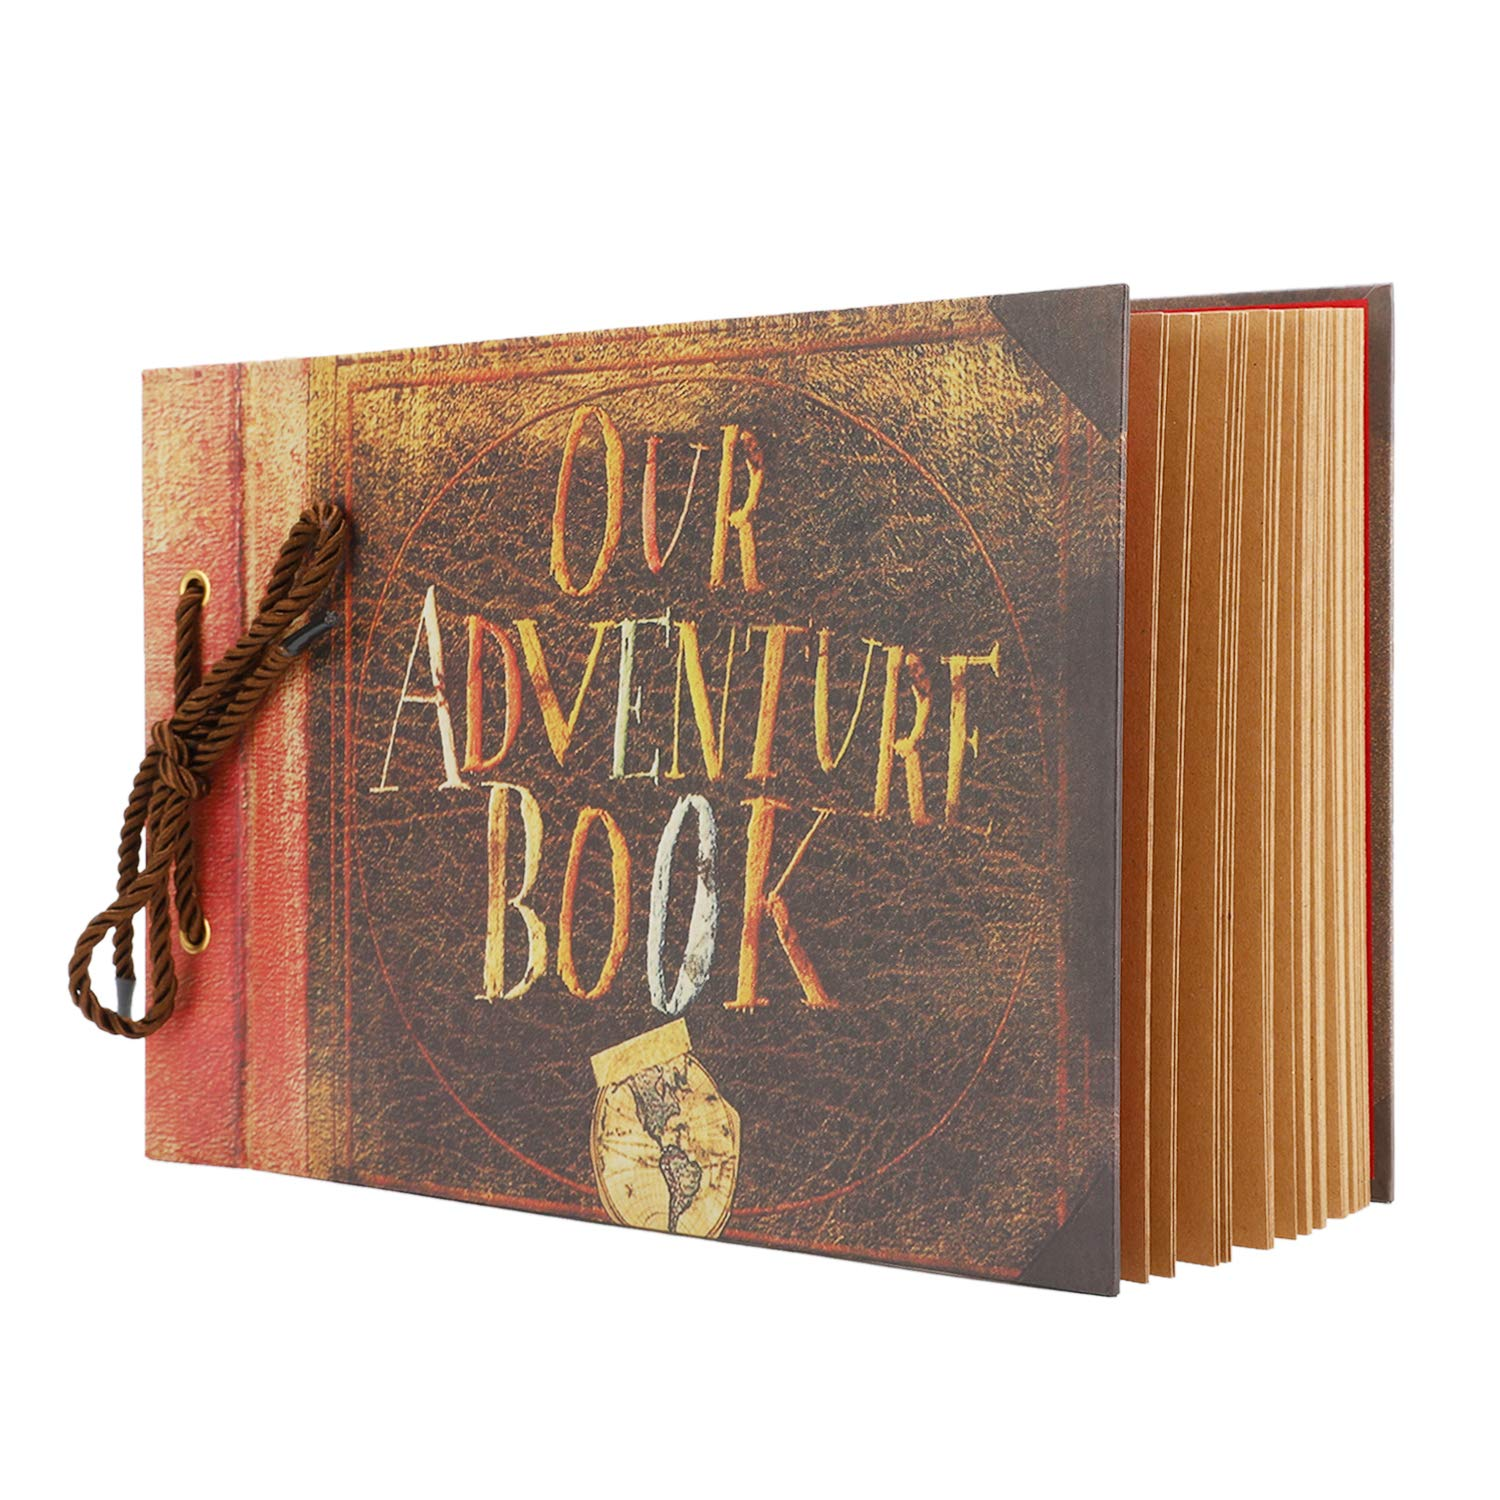 Our Adventure Book Scrapbook for Anniversary Wedding Travel Handmade Albums Scrap Book 11.6 x 7.5 Inches 40 Sheets 80 Pages Photo Album with DIY Accessories Photo Corner Stickers